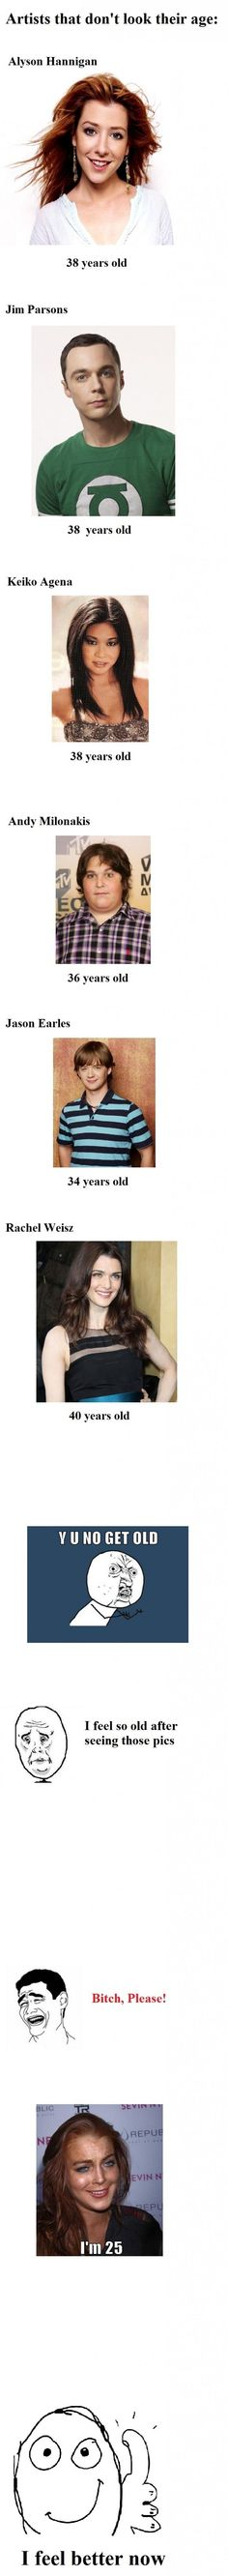 Actors who don't look their age